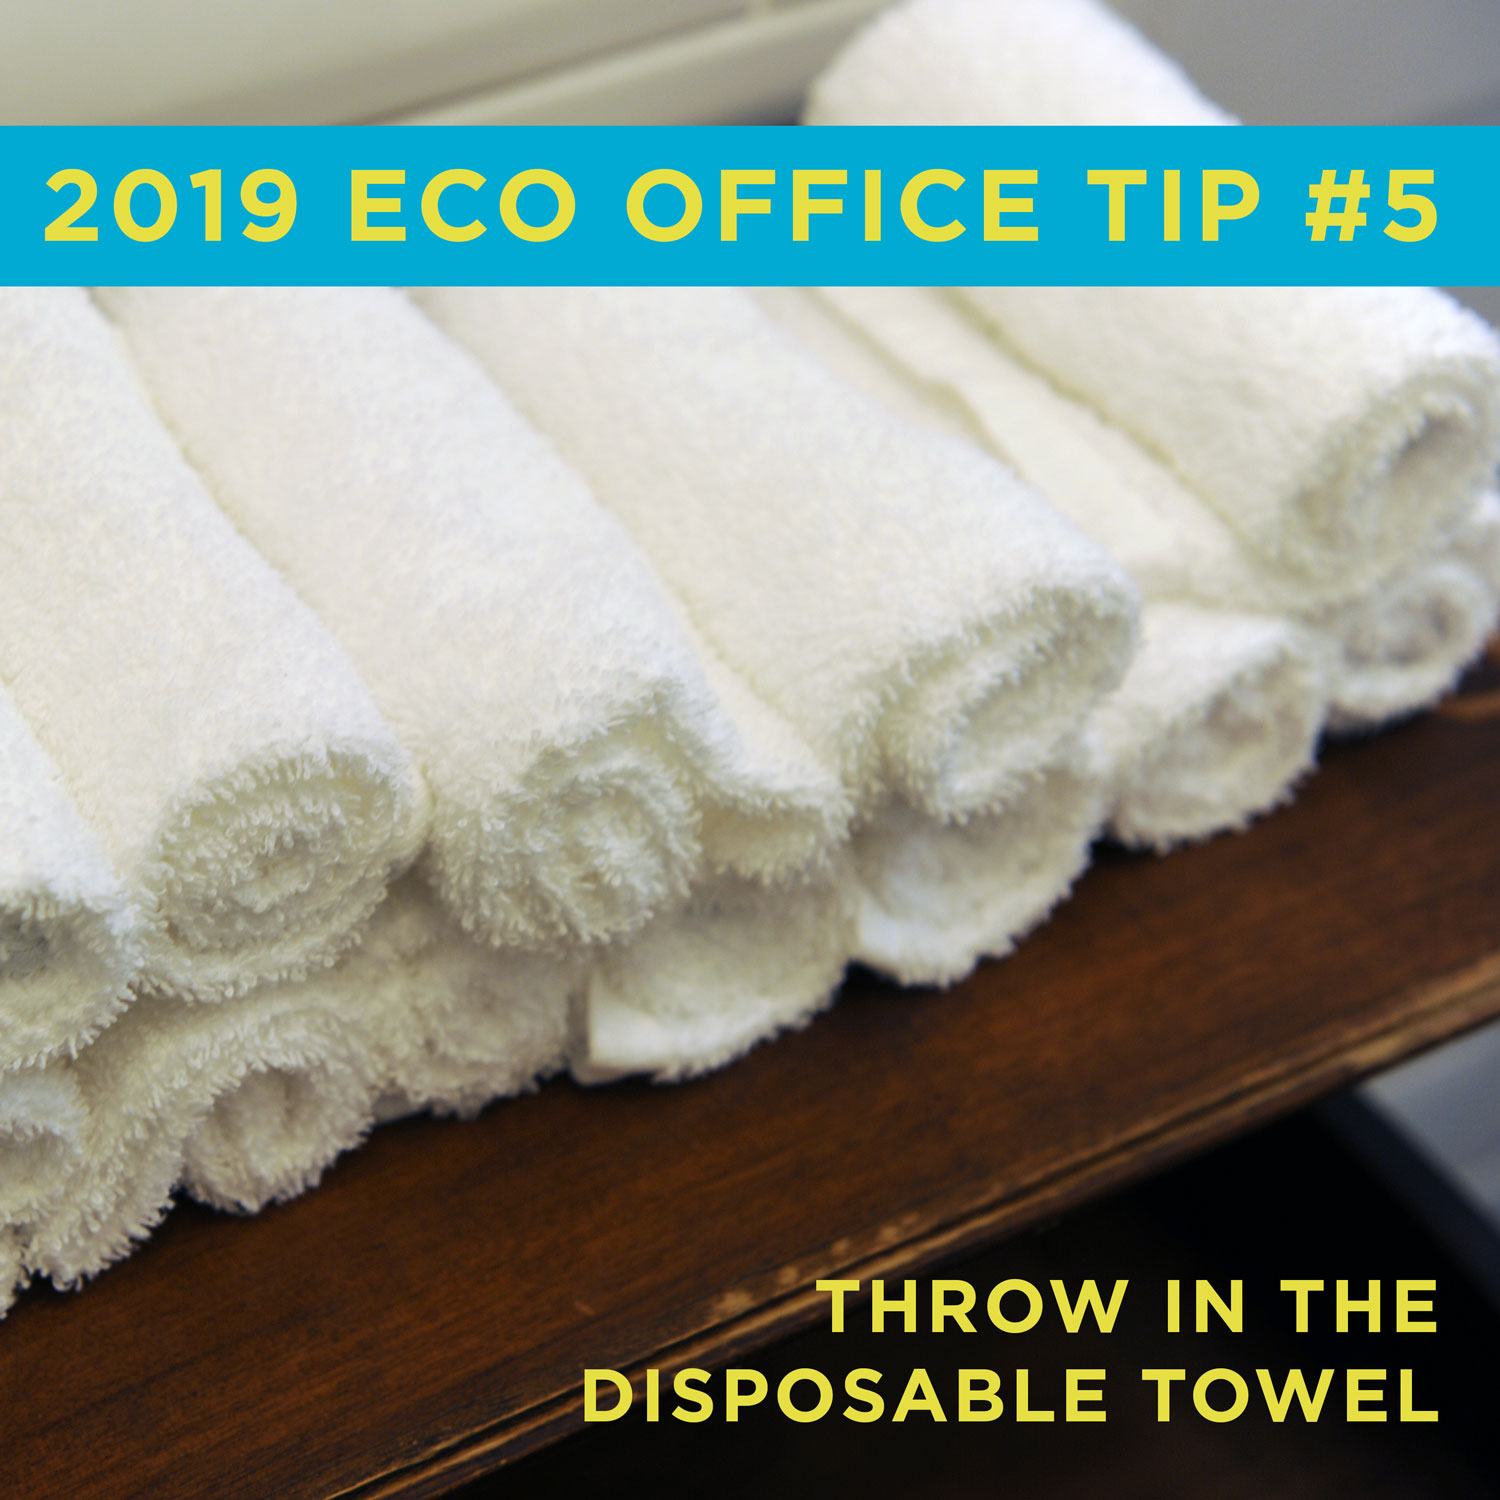 Eco Friendly Office Tip 5: Throw in the disposable towel